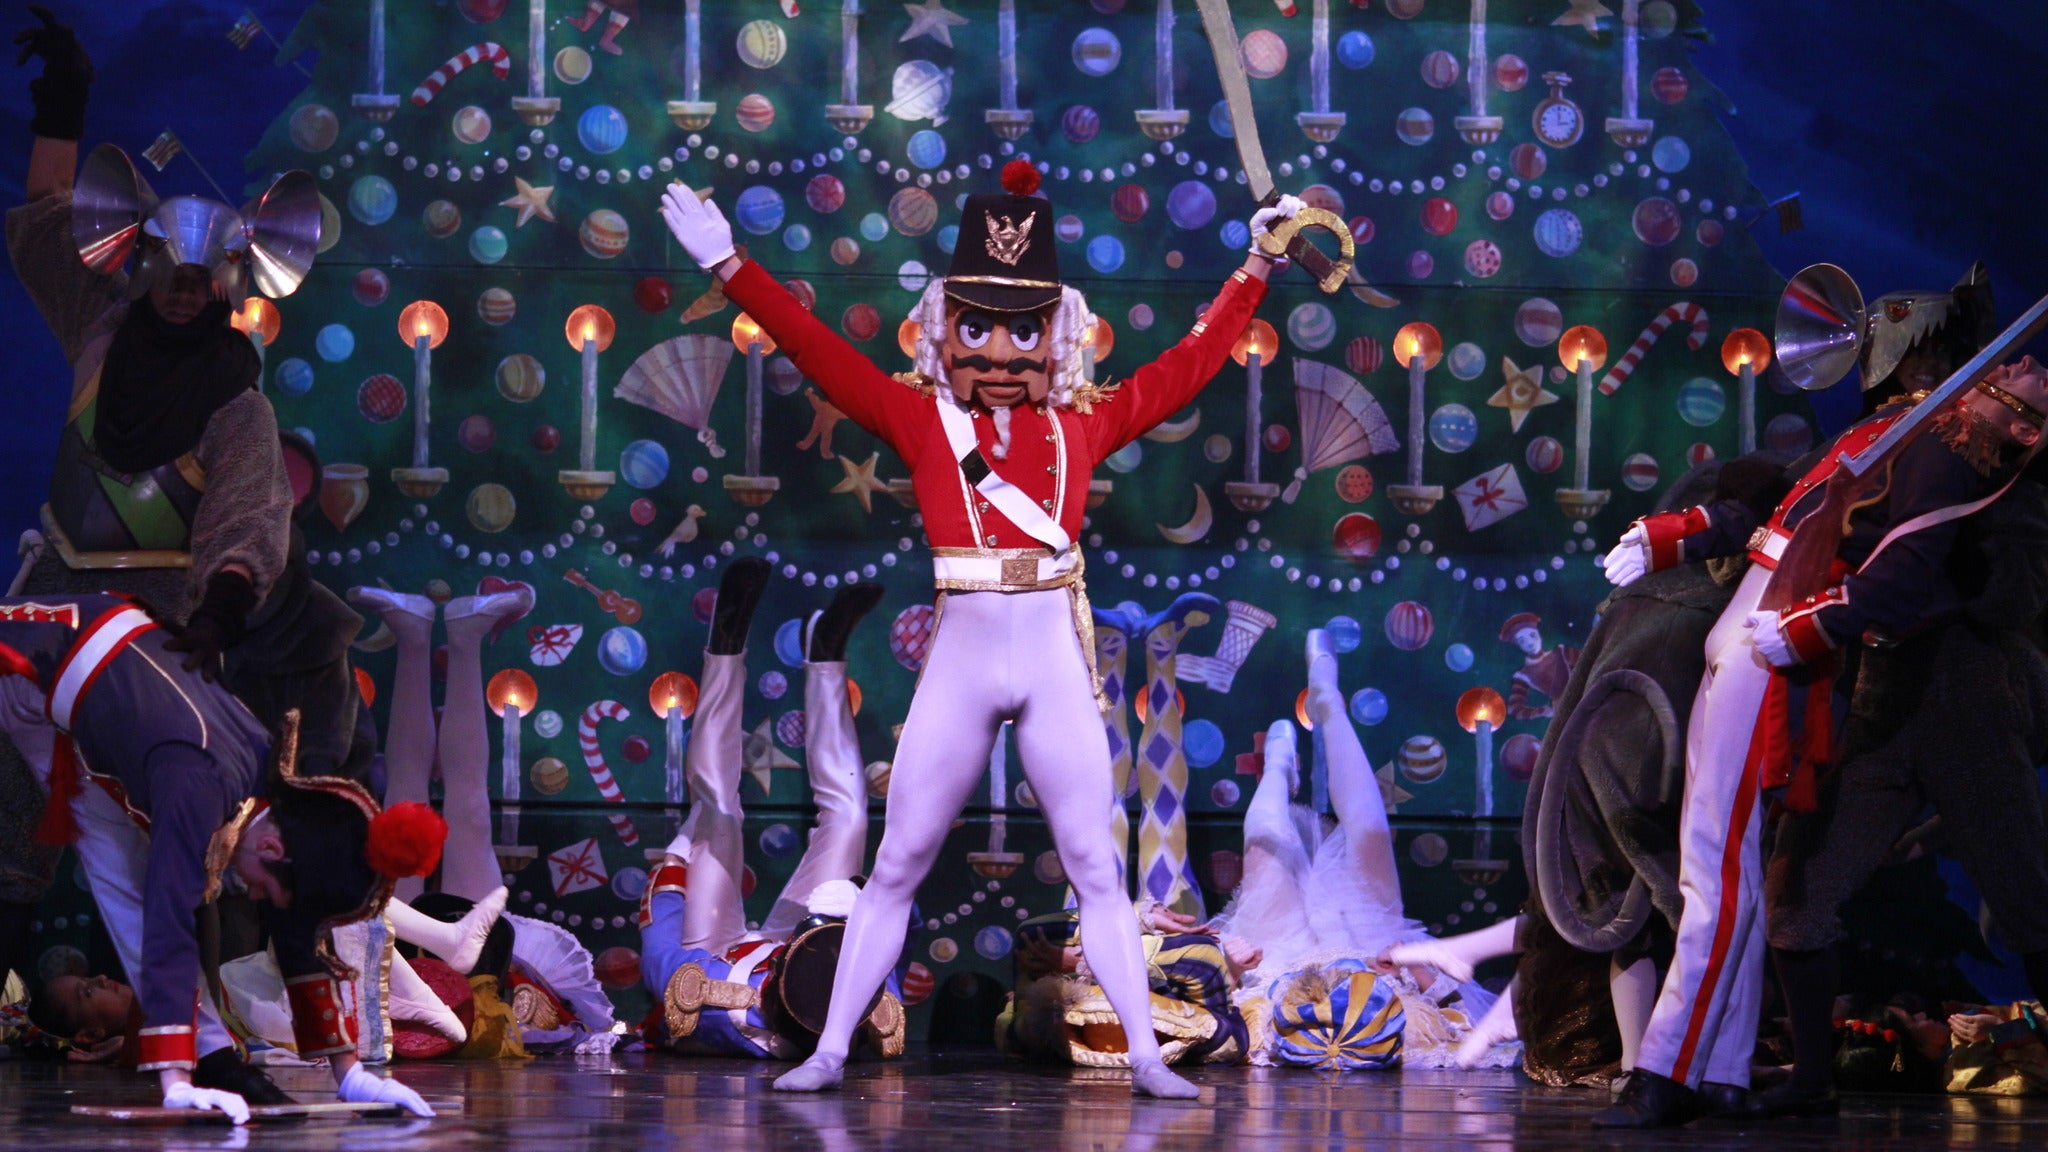 The Nutcracker at Royce Hall - UCLA